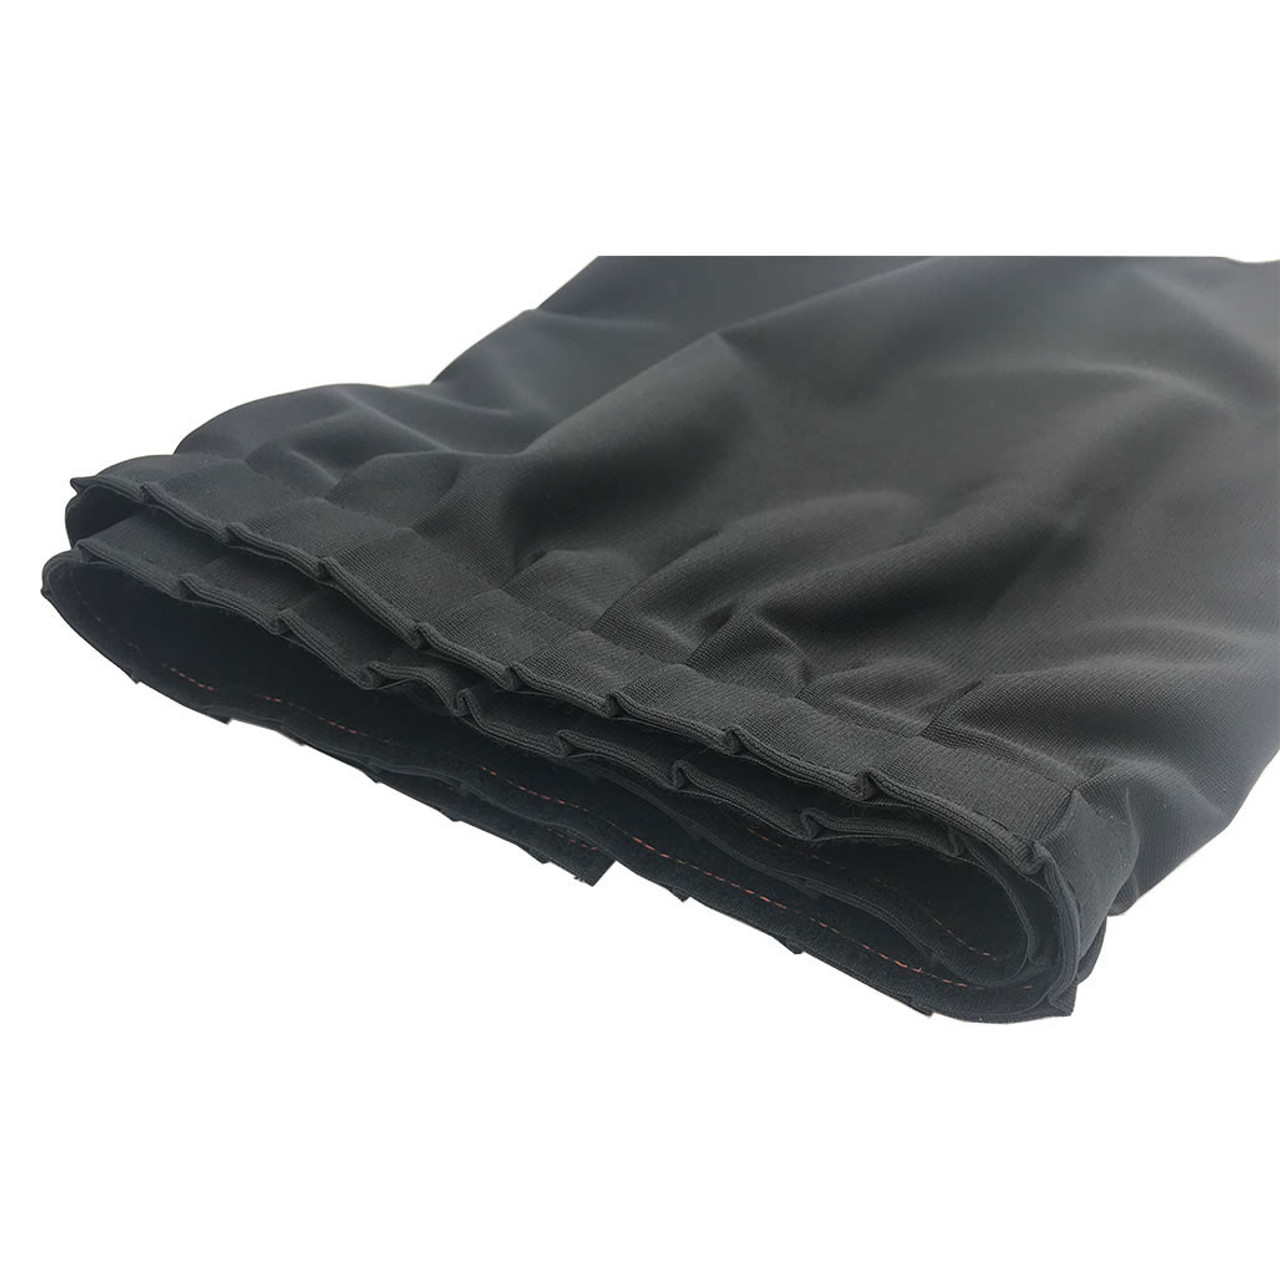 24 Inches High Best Value Black Expo Pleat Polyester Stage Skirting with Velcro. FR Rated. - Close up of Expo/Mini-Accordion Pleat.